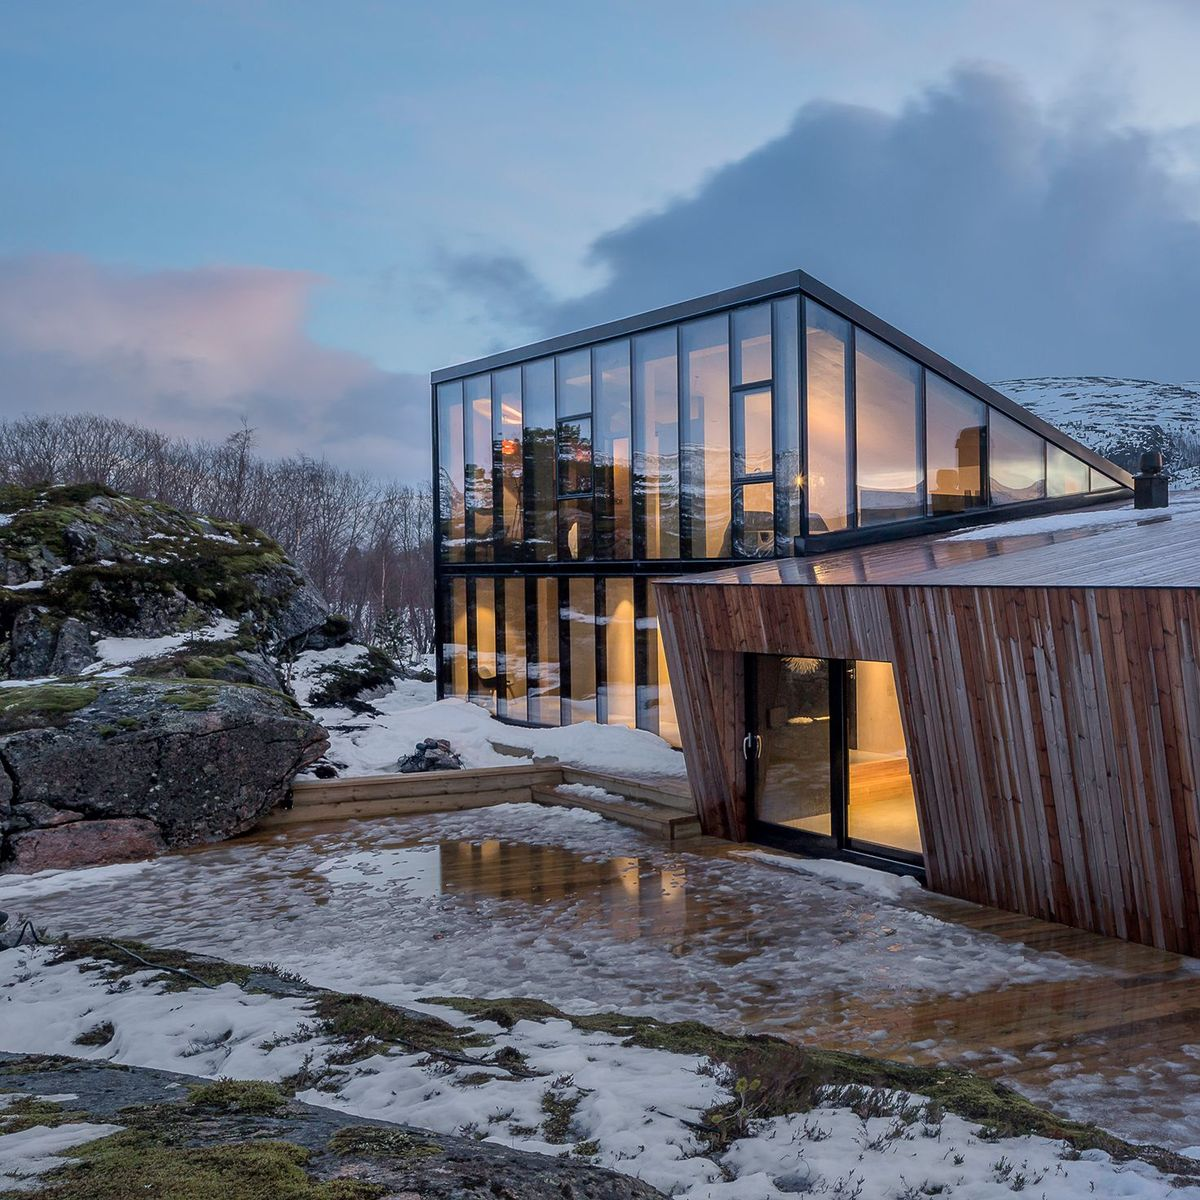 Ferienhaus am Efjord in Norwegen: Komfjordtabel